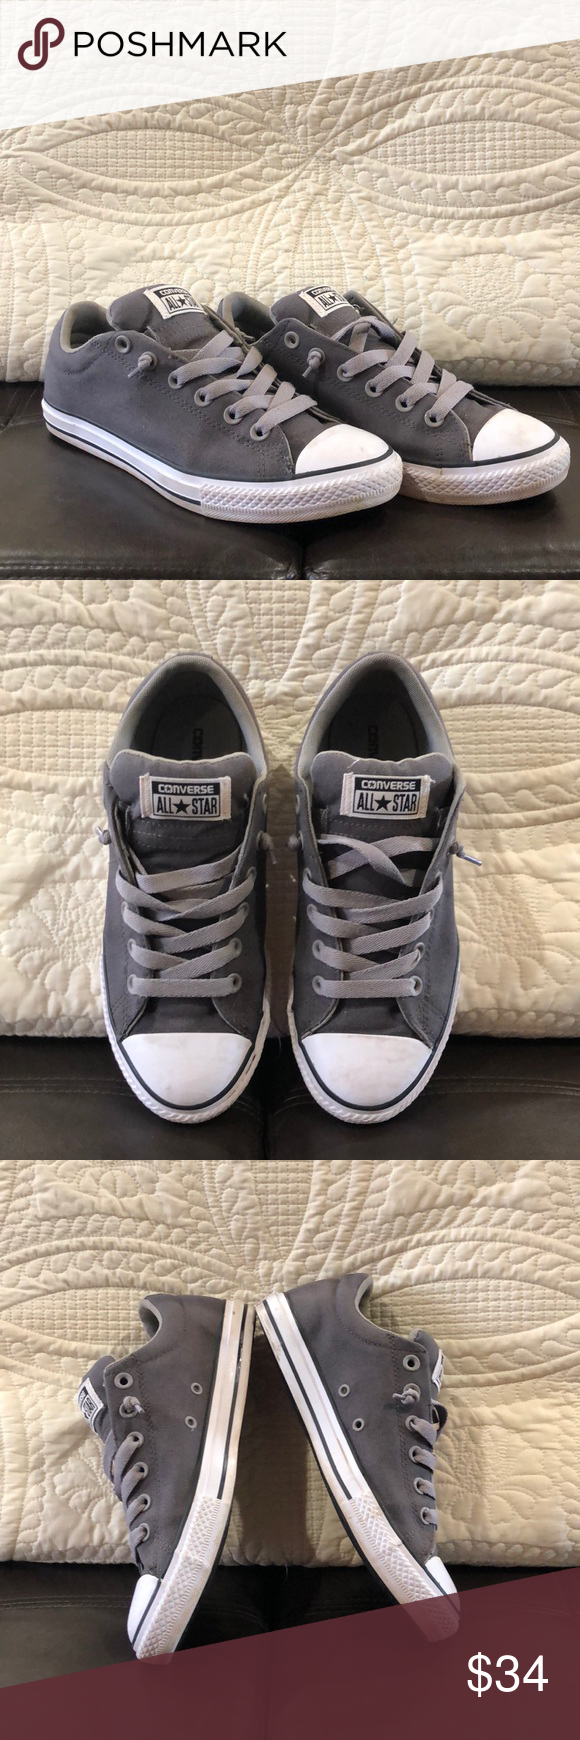 Converse All Star gray tennis shoes Size 6 in boys men 9c226c8715